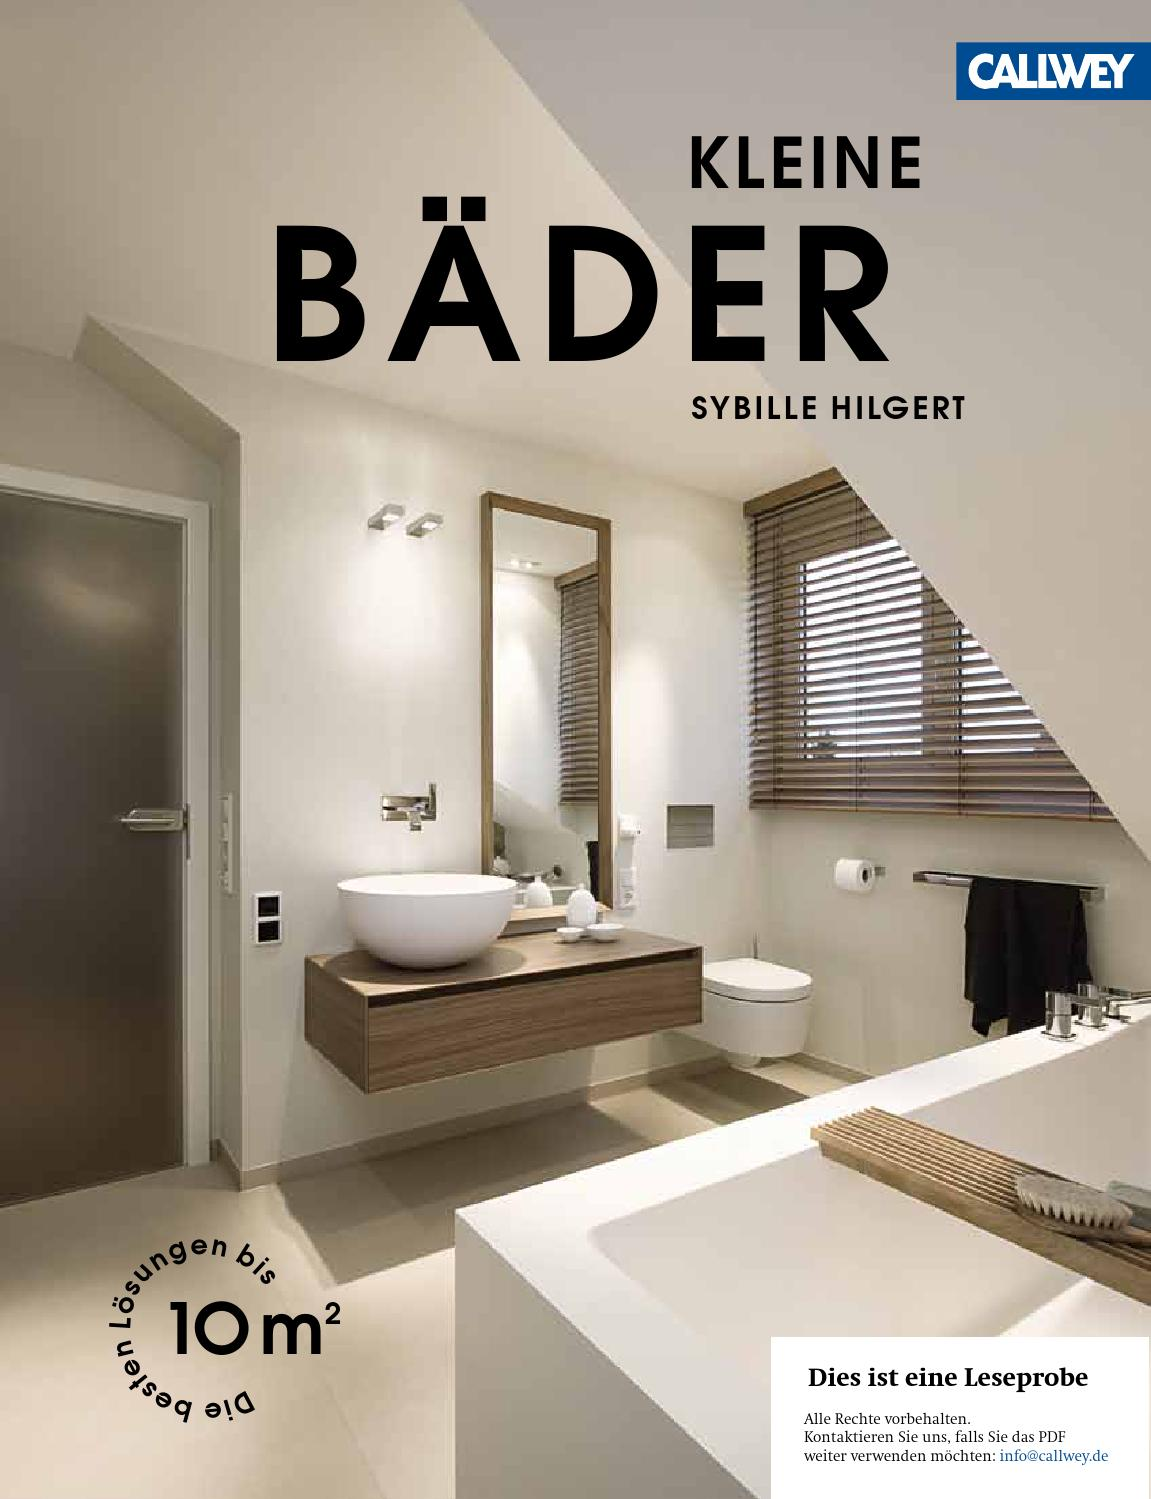 Hilgert Kleine Baeder issuu by Georg D.W. Callwey GmbH & Co. KG ...